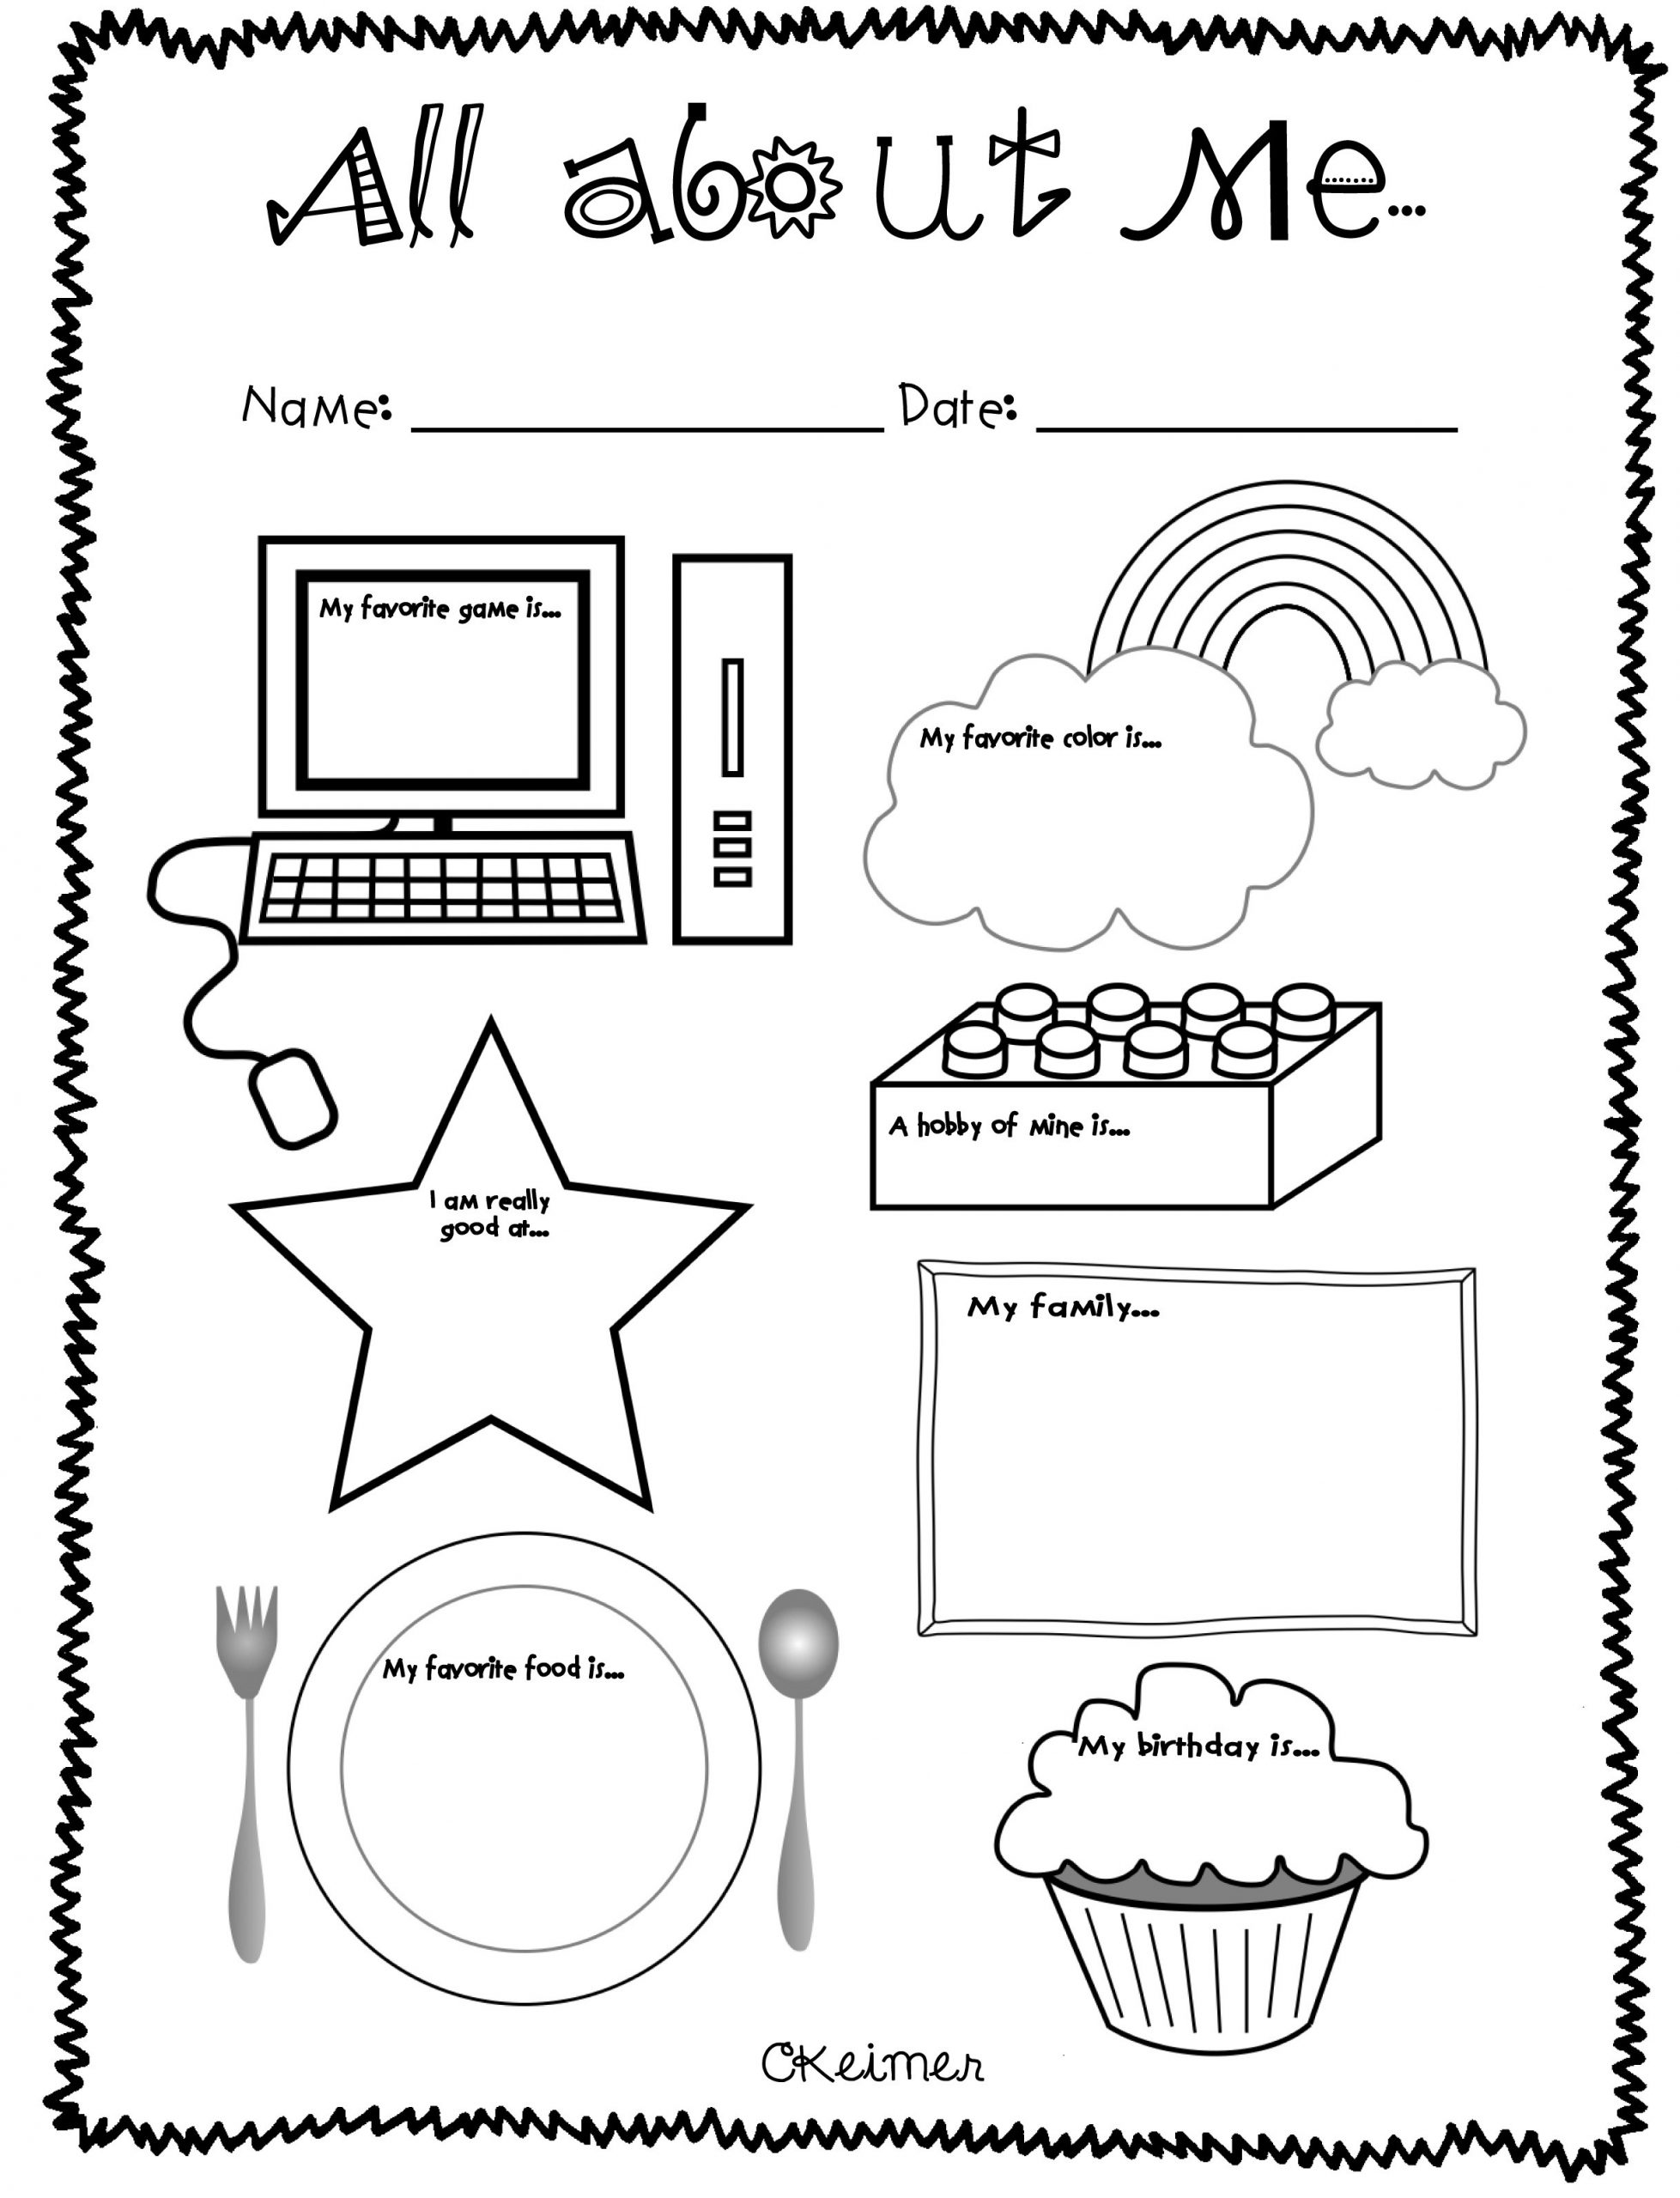 All About Me Worksheet Preschool Copy All About Me Lessons Tes Teach